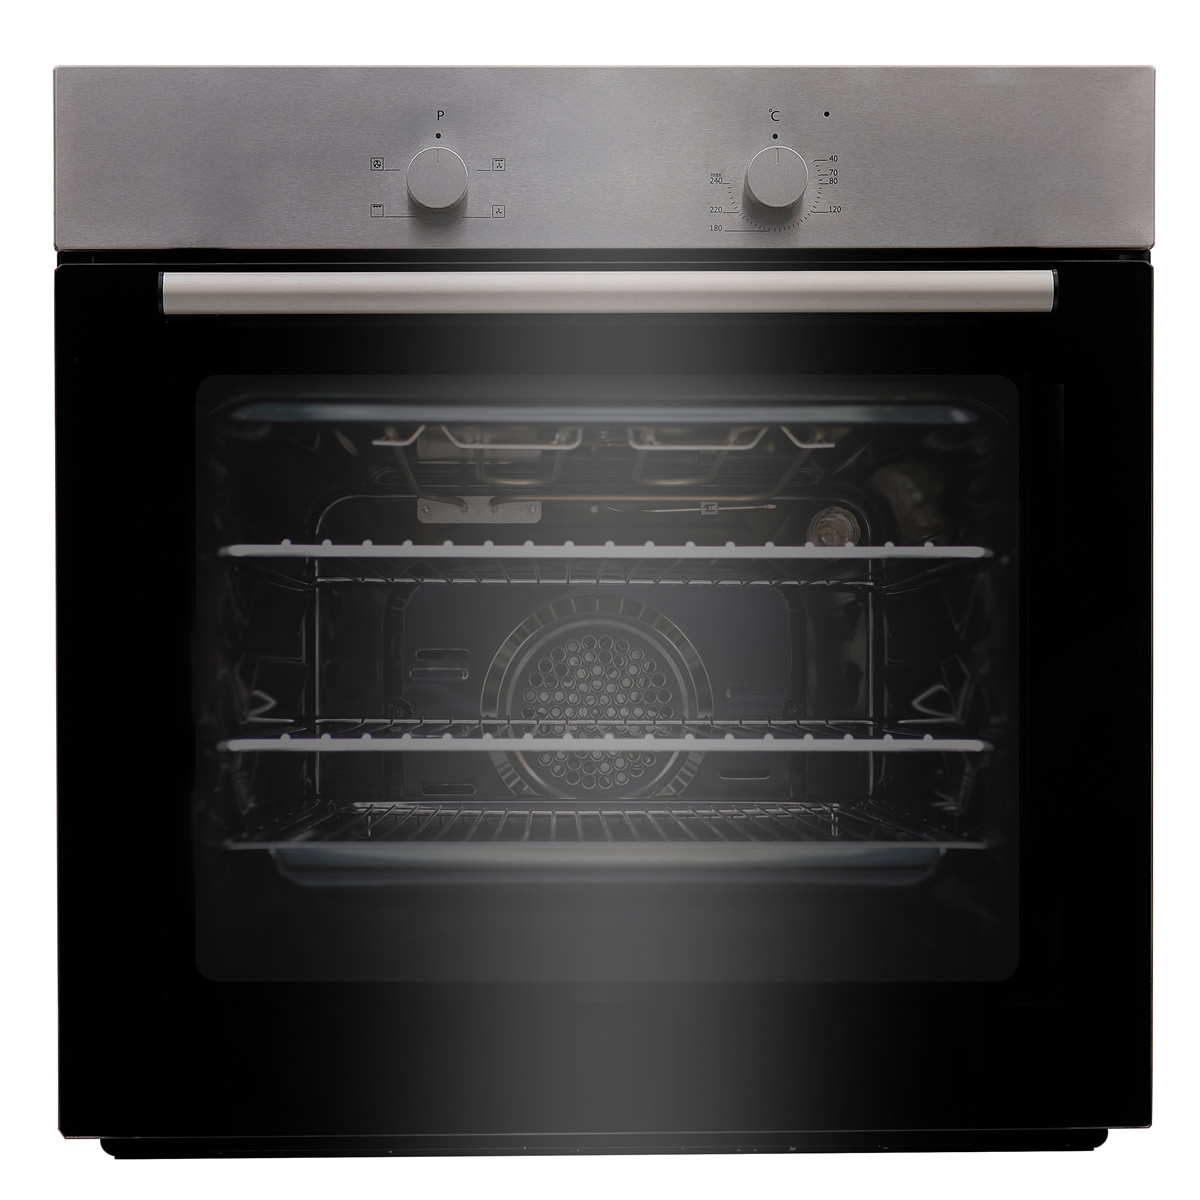 BITK60ESX Built-in Single Electric Oven 13-Amp Connection S/Steel